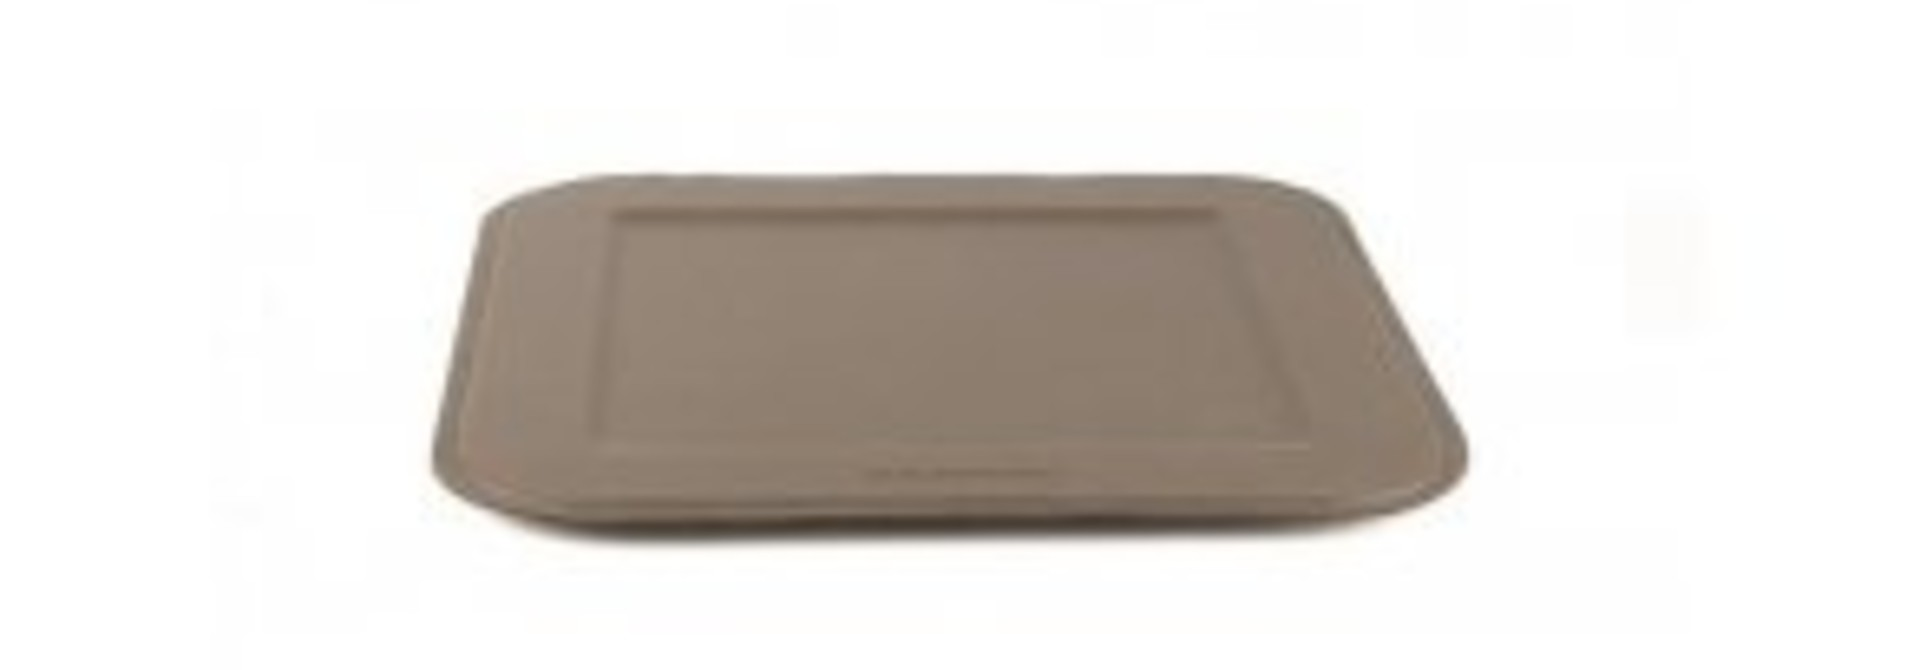 Serving Tray Square - Leather - Cocoa Brown